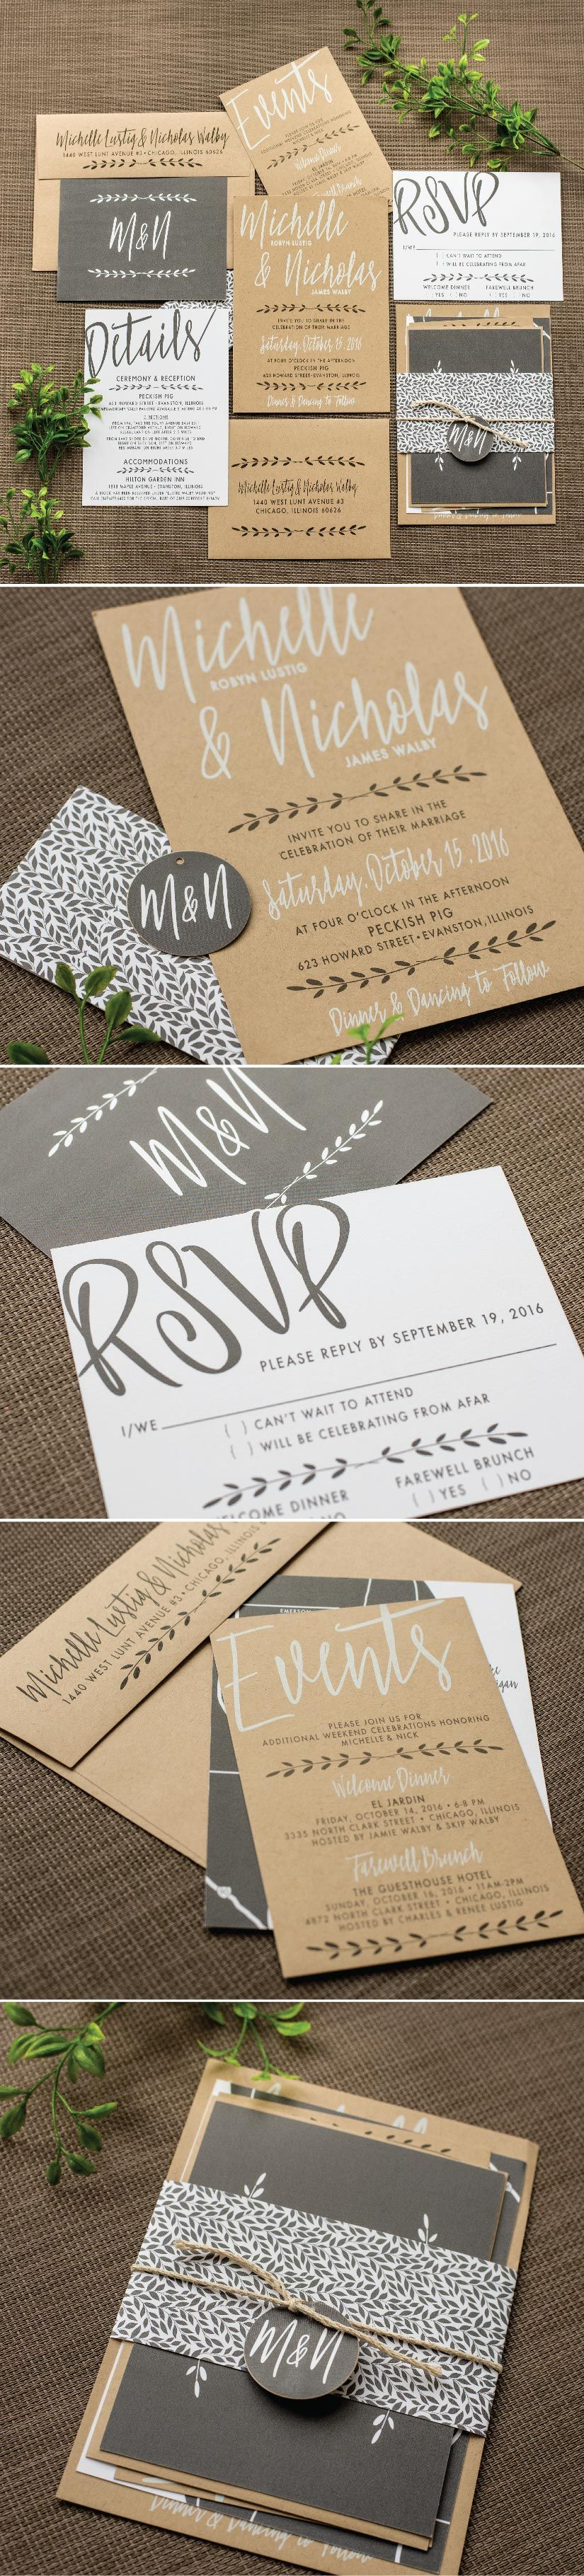 wedding invitation rsvp wording funny%0A Industrial Chic Wedding Invitation by Ashley Parker Creative for a Modern  Wedding on Kraft Paper with